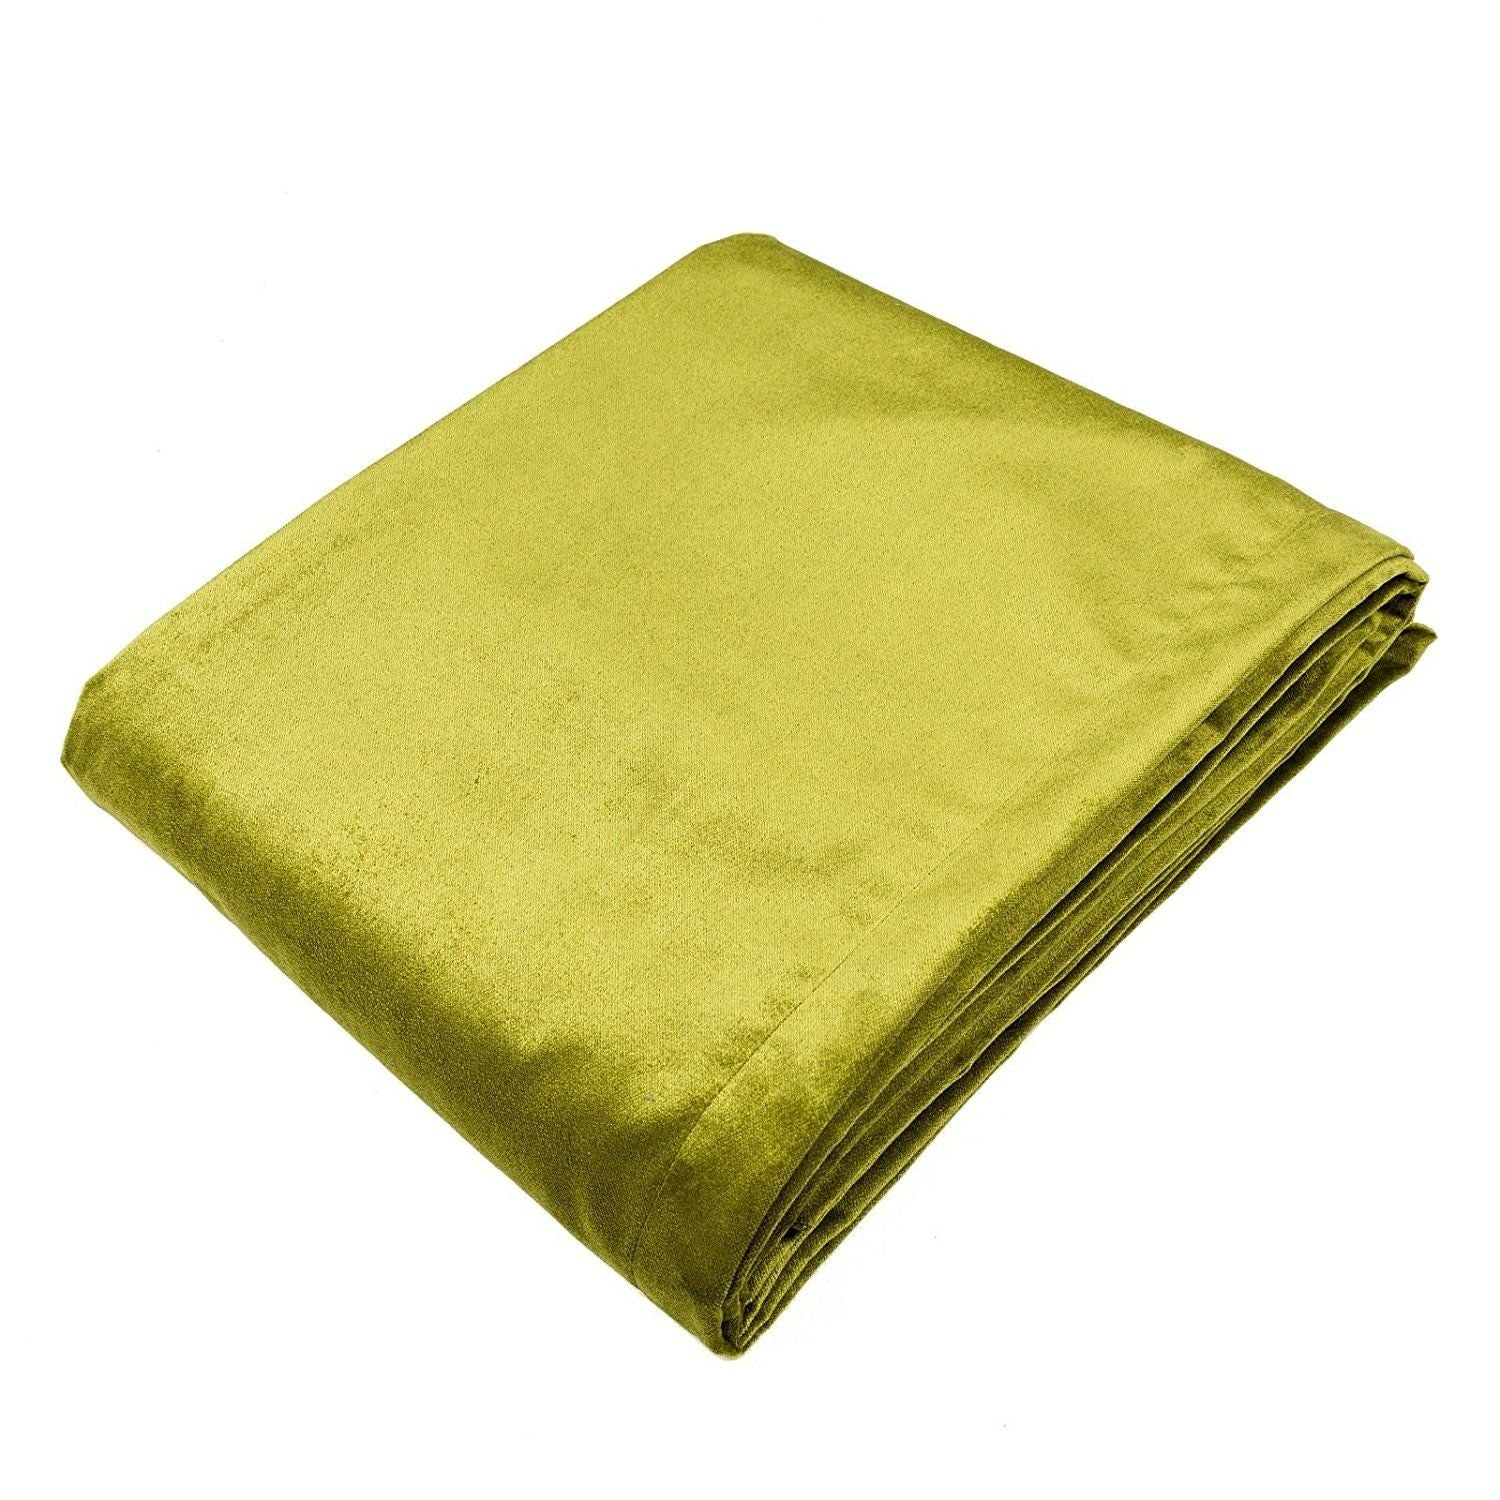 McAlister Textiles Lime Green Crushed Velvet Throws & Runners Throws and Runners Bed Runner (50cm x 240cm)